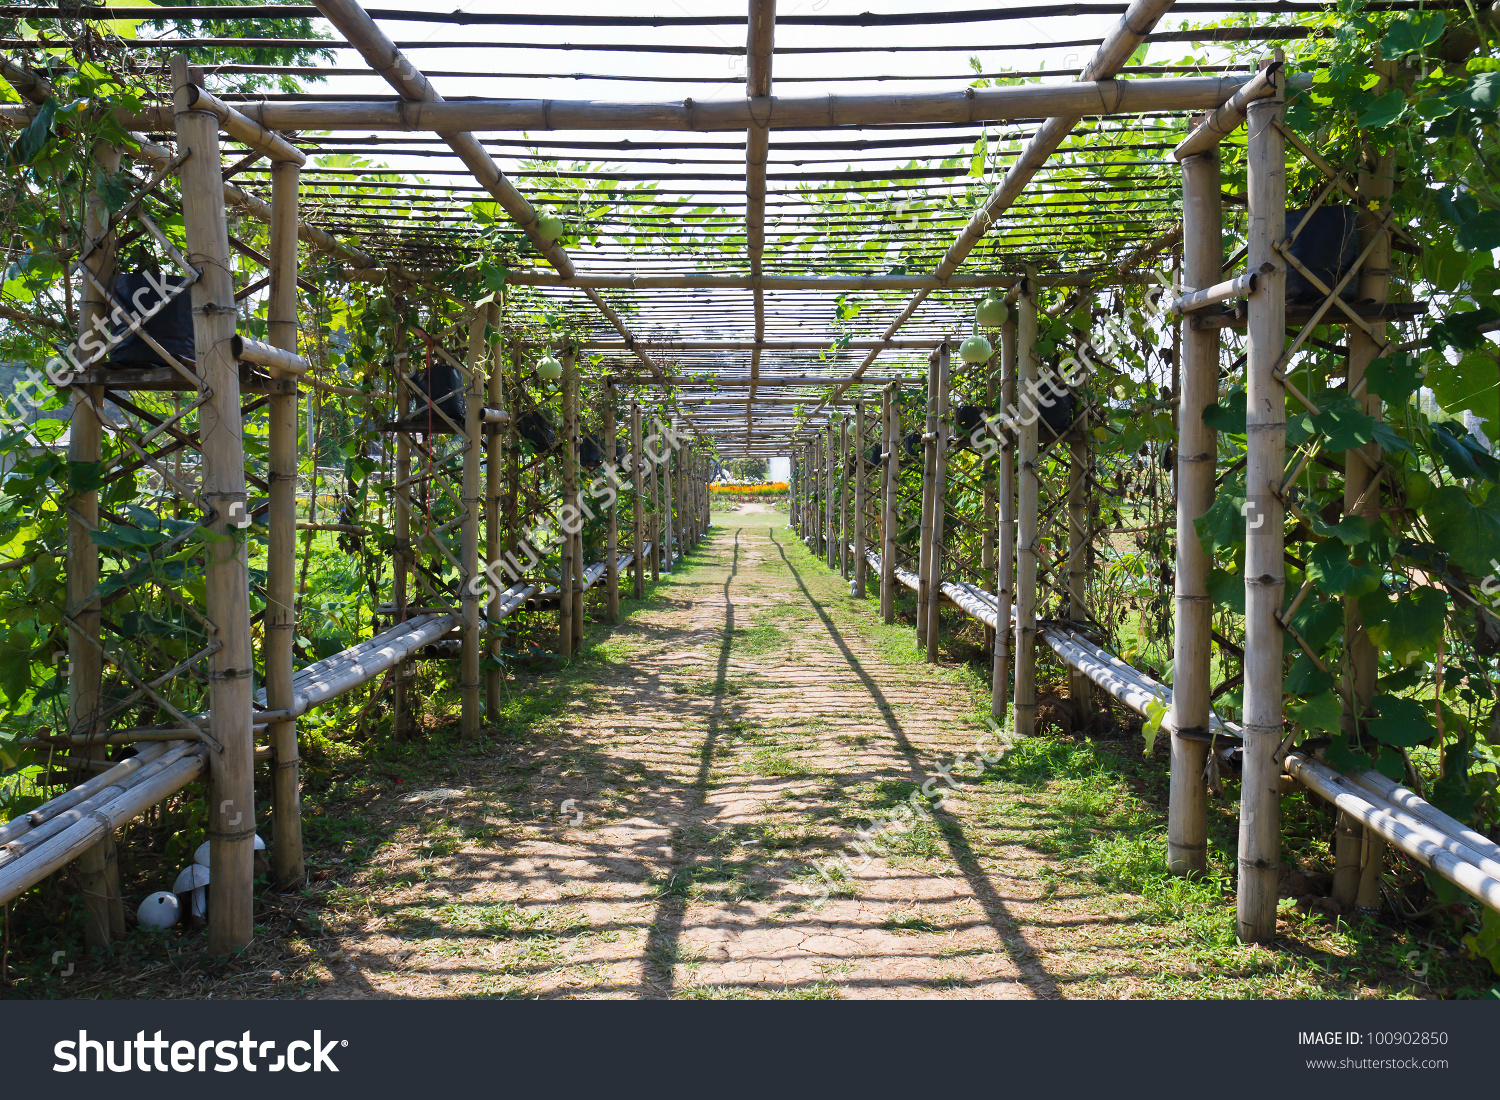 Bamboo Tunnel Garden Covered By Squash Stock Photo 100902850.